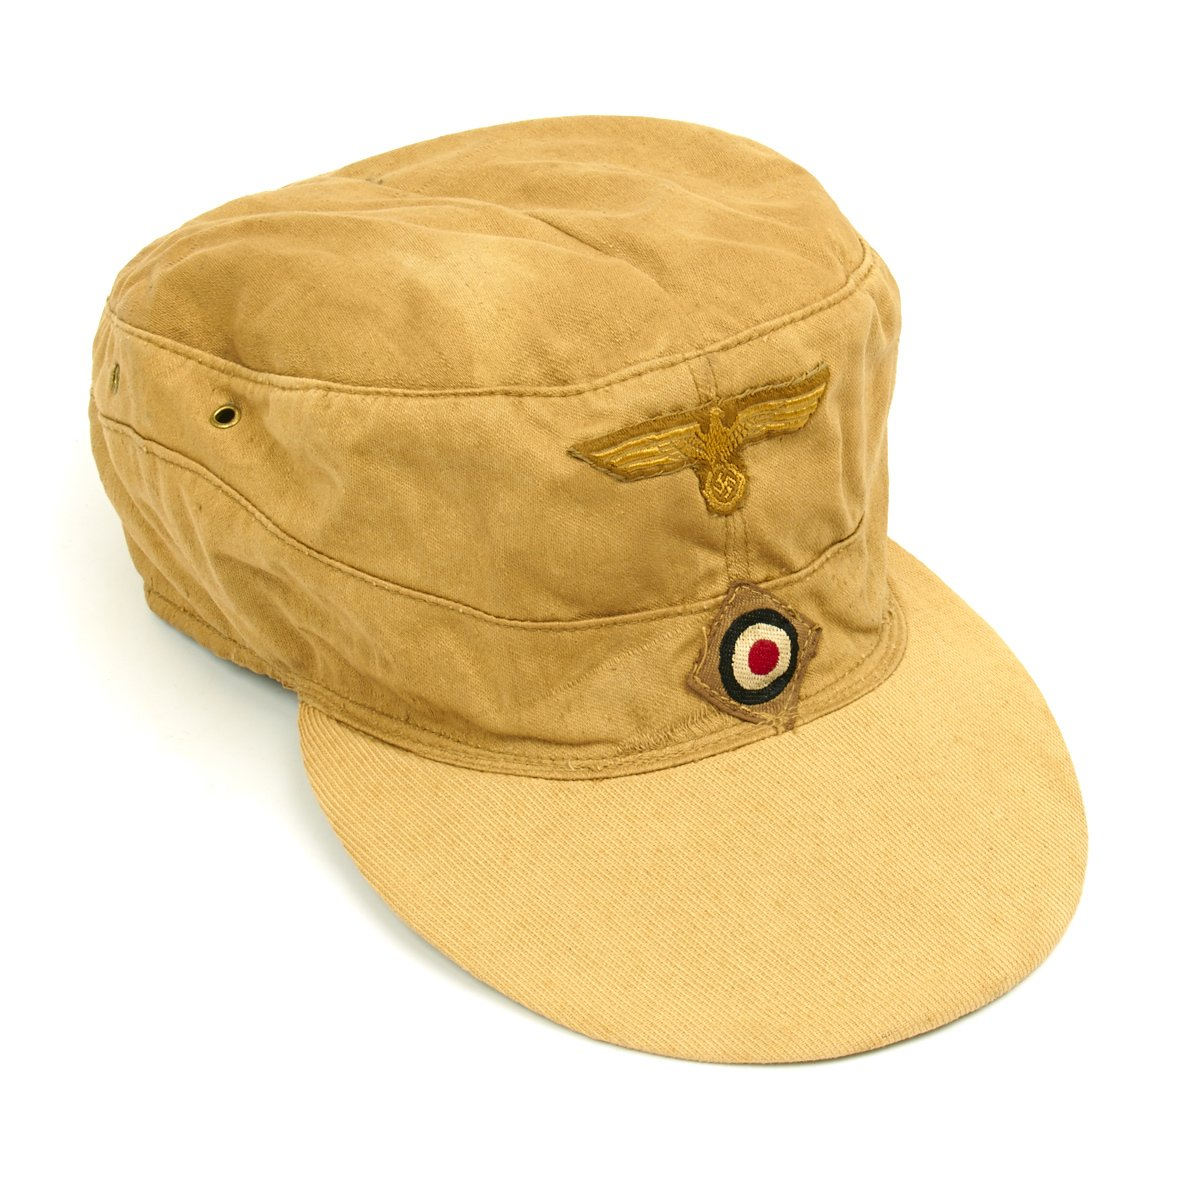 1beef5fc46ac6 Tap to expand · Next · Original German WWII M43 Afrika Korps Tropical Field  Cap - French Manufacture